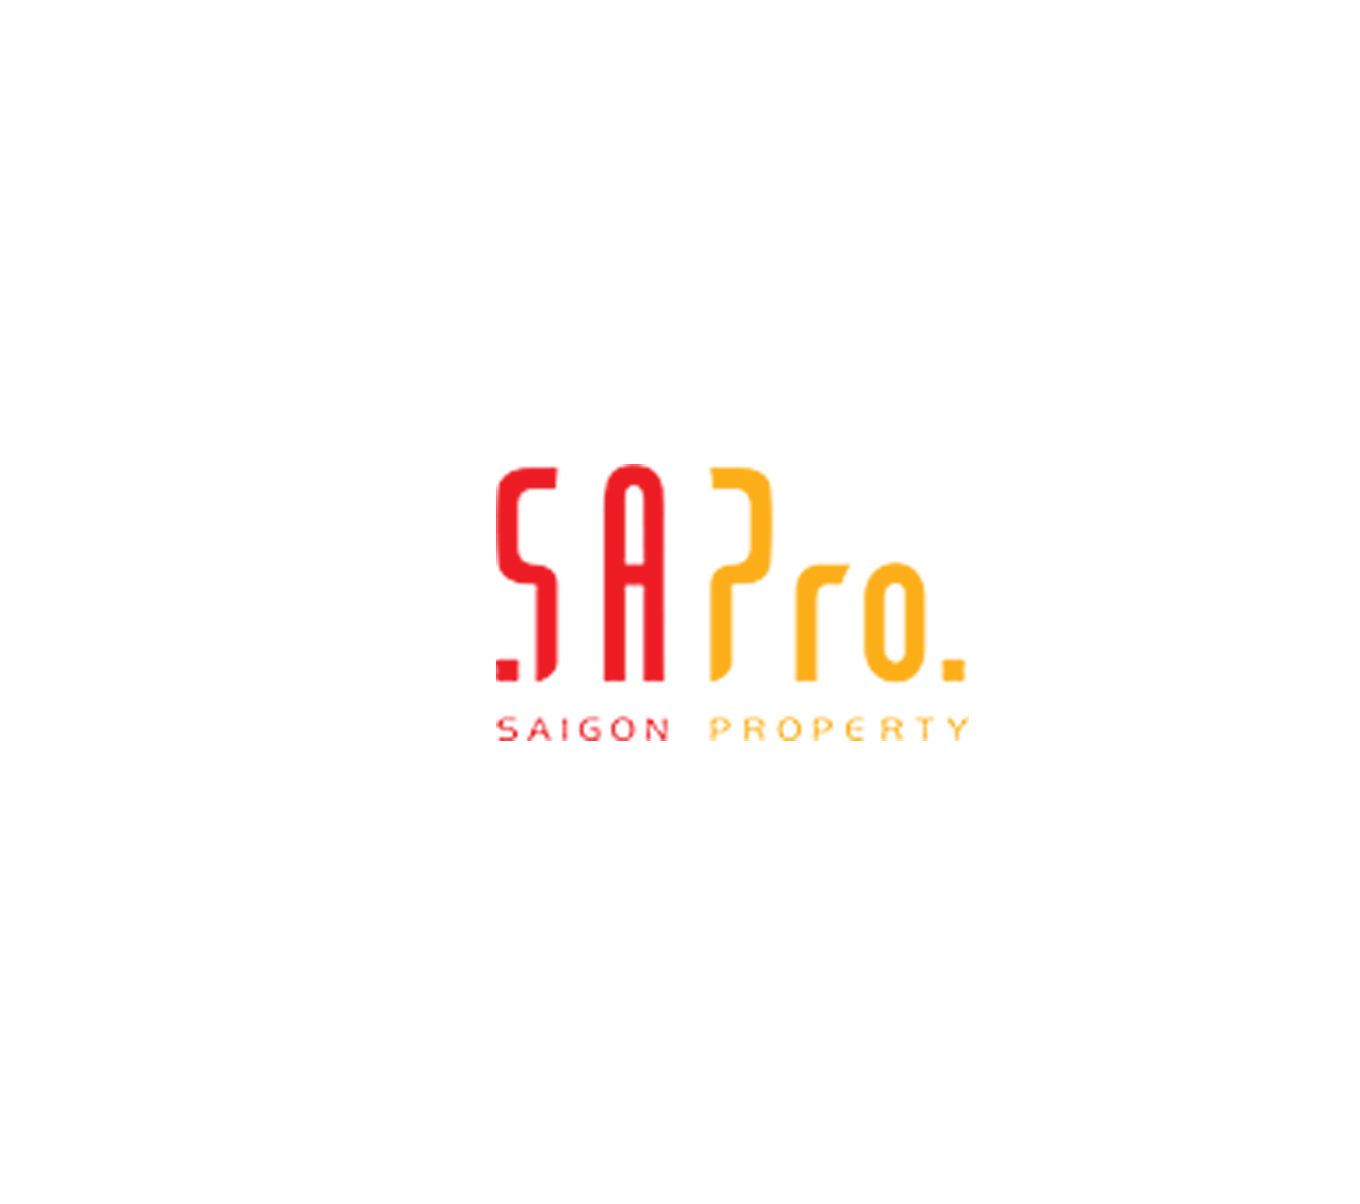 Saigon Property